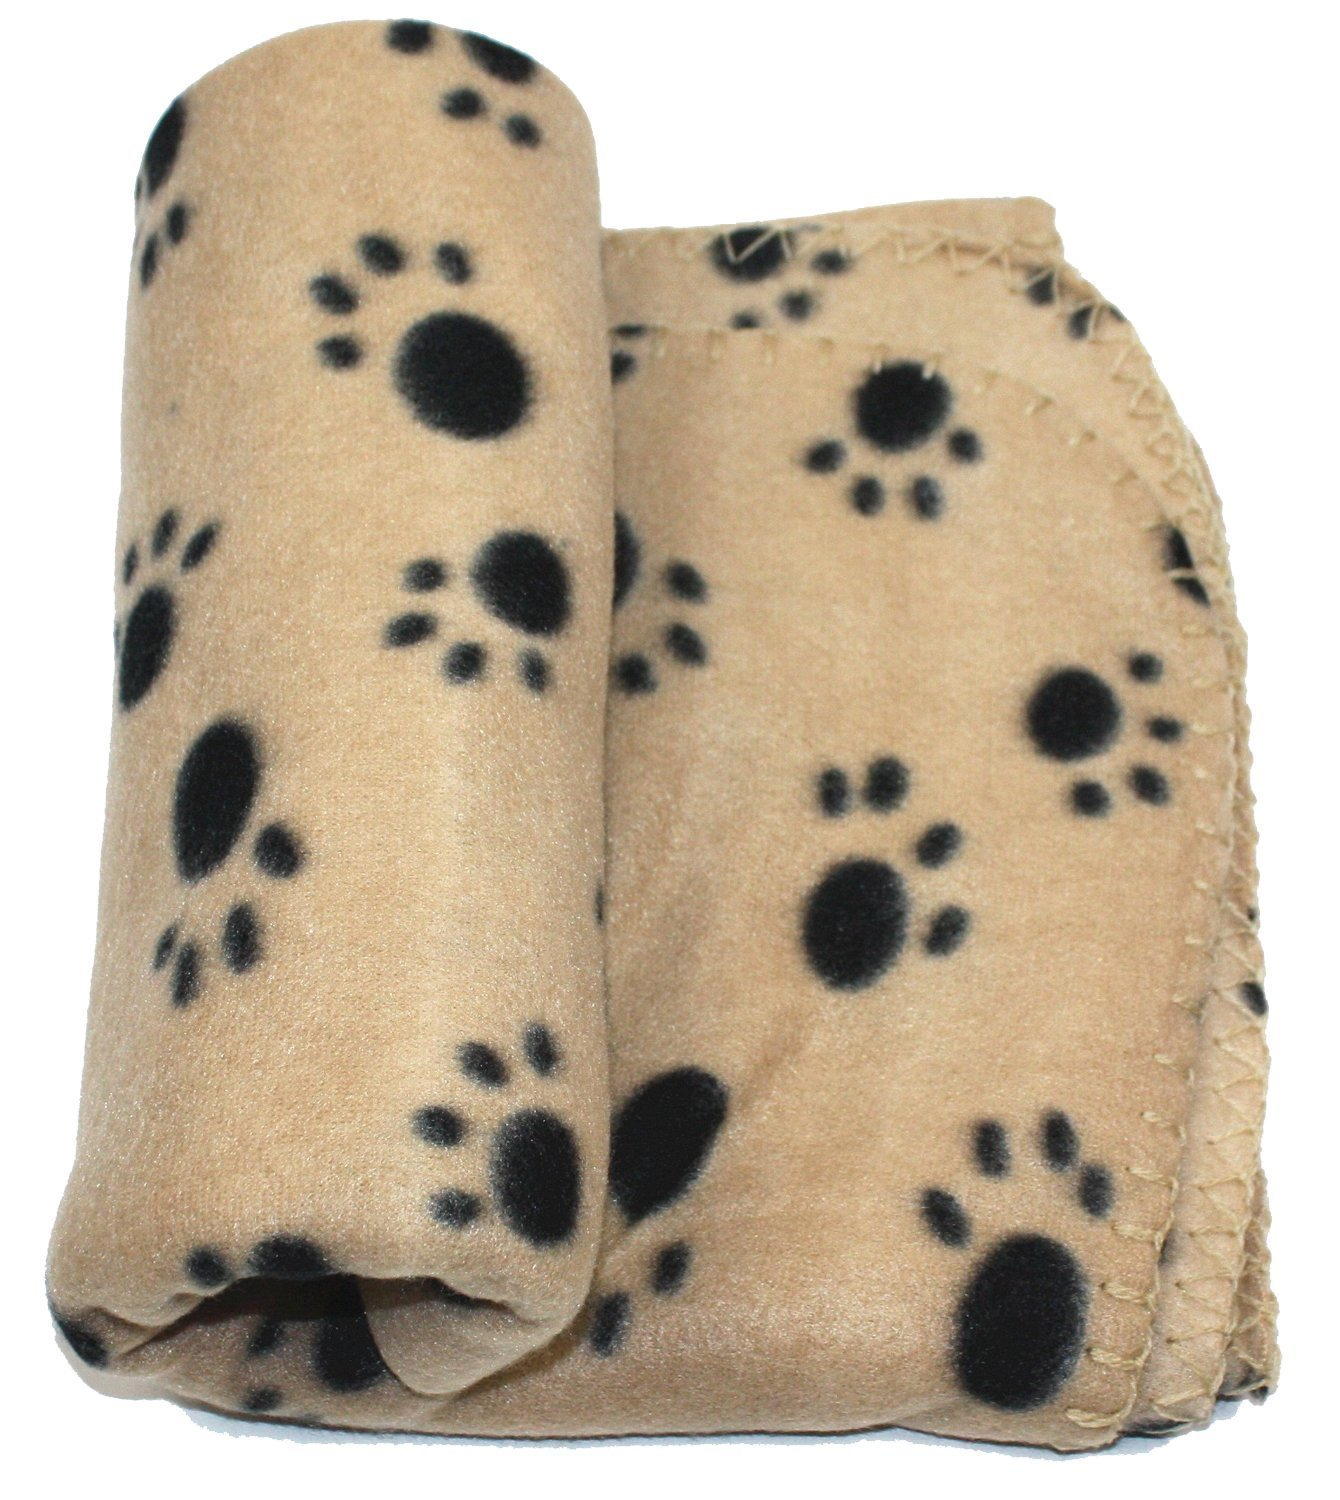 WZYuan Puppy Blanket Paw Prints Pet Cushion Small Dog Cat Bed Soft Warm Sleep Mat, Small, Beige